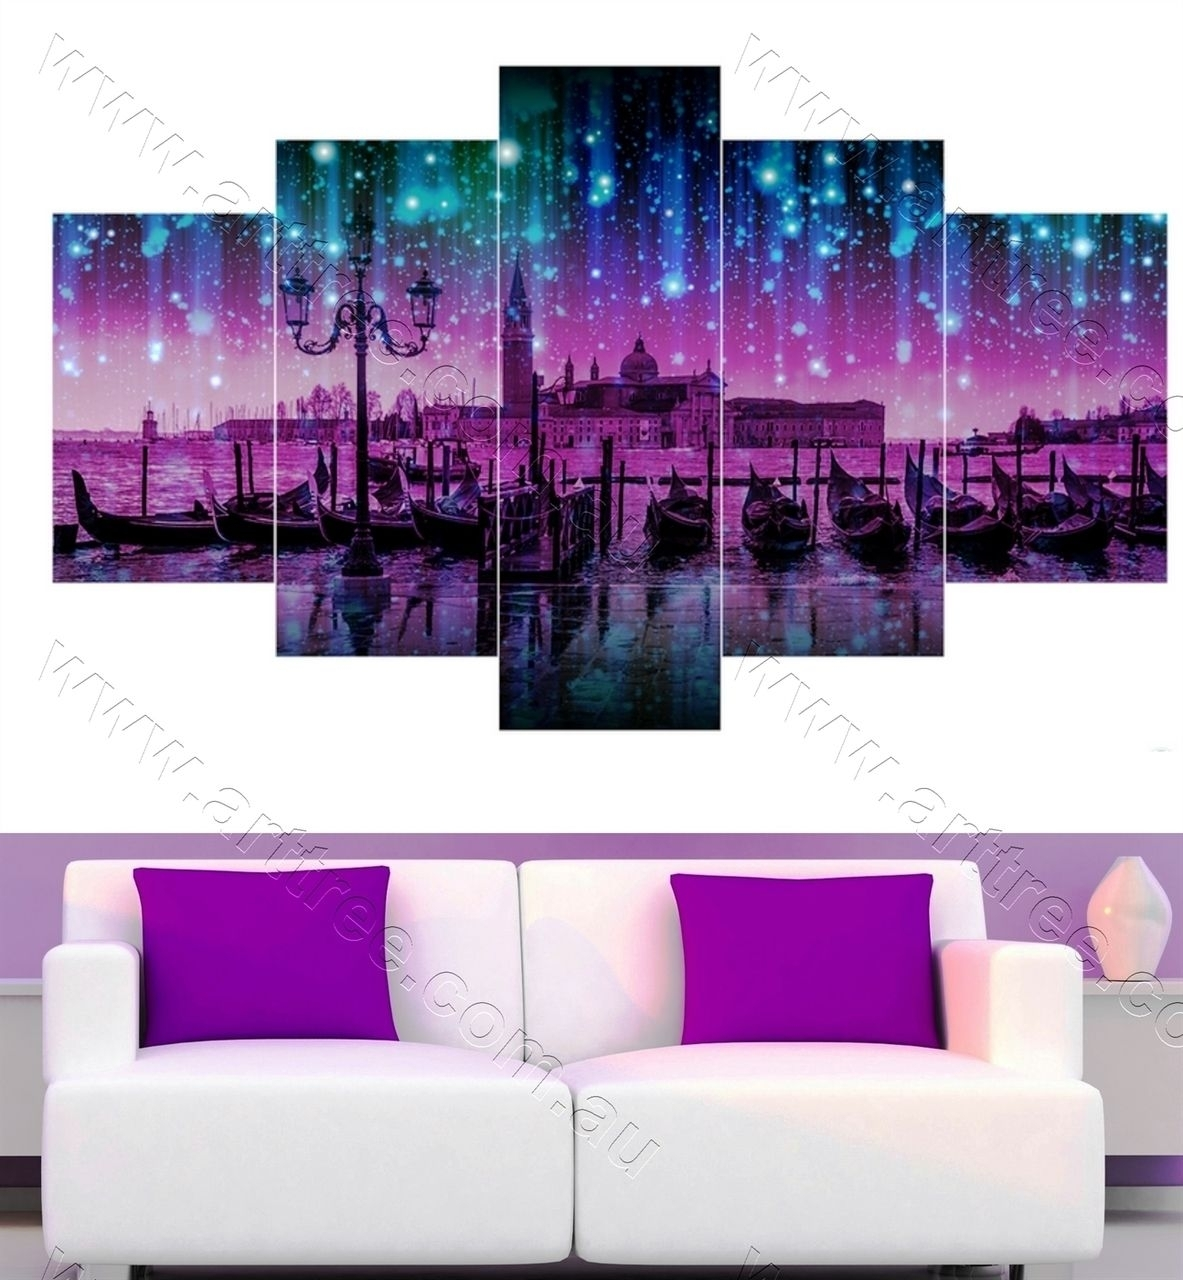 Boat In Purple Night Wall Art Perth | 5 Piece Canvas Print With Regard To Current Canvas Wall Art Of Perth (View 12 of 15)